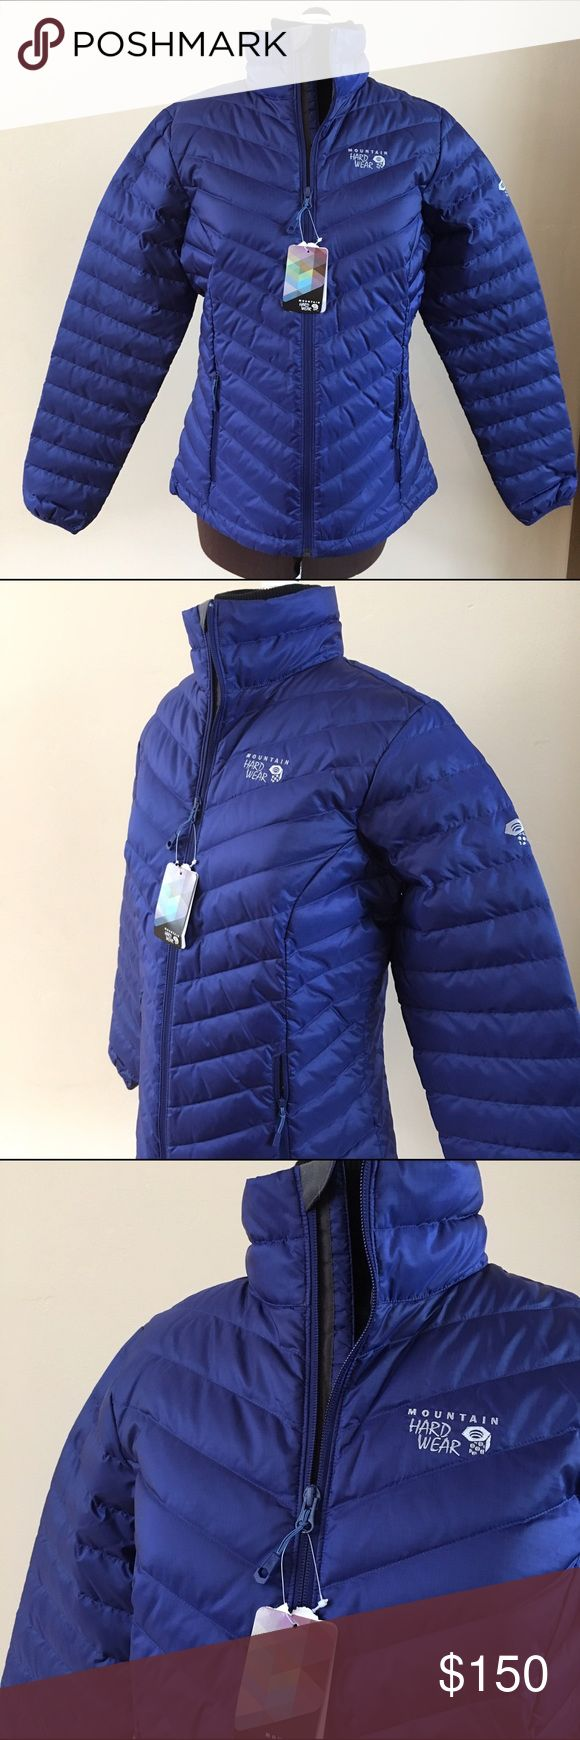 ❄️🎅🏻 NWT MOUNTAIN HARD WEAR DOWN JACKET ❄️🎅🏻 NEW duck down jacket from Mountain Hard Wear. Just in time for Christmas and Winter weather. Beautiful deep purple. Front zipper and 2 side zipper pockets. Black interior lining. 75% duck down and 25% duck feathers. Will keep you super warm and stylish all Winter. Size Medium. Mountain Hard Wear Jackets & Coats Puffers